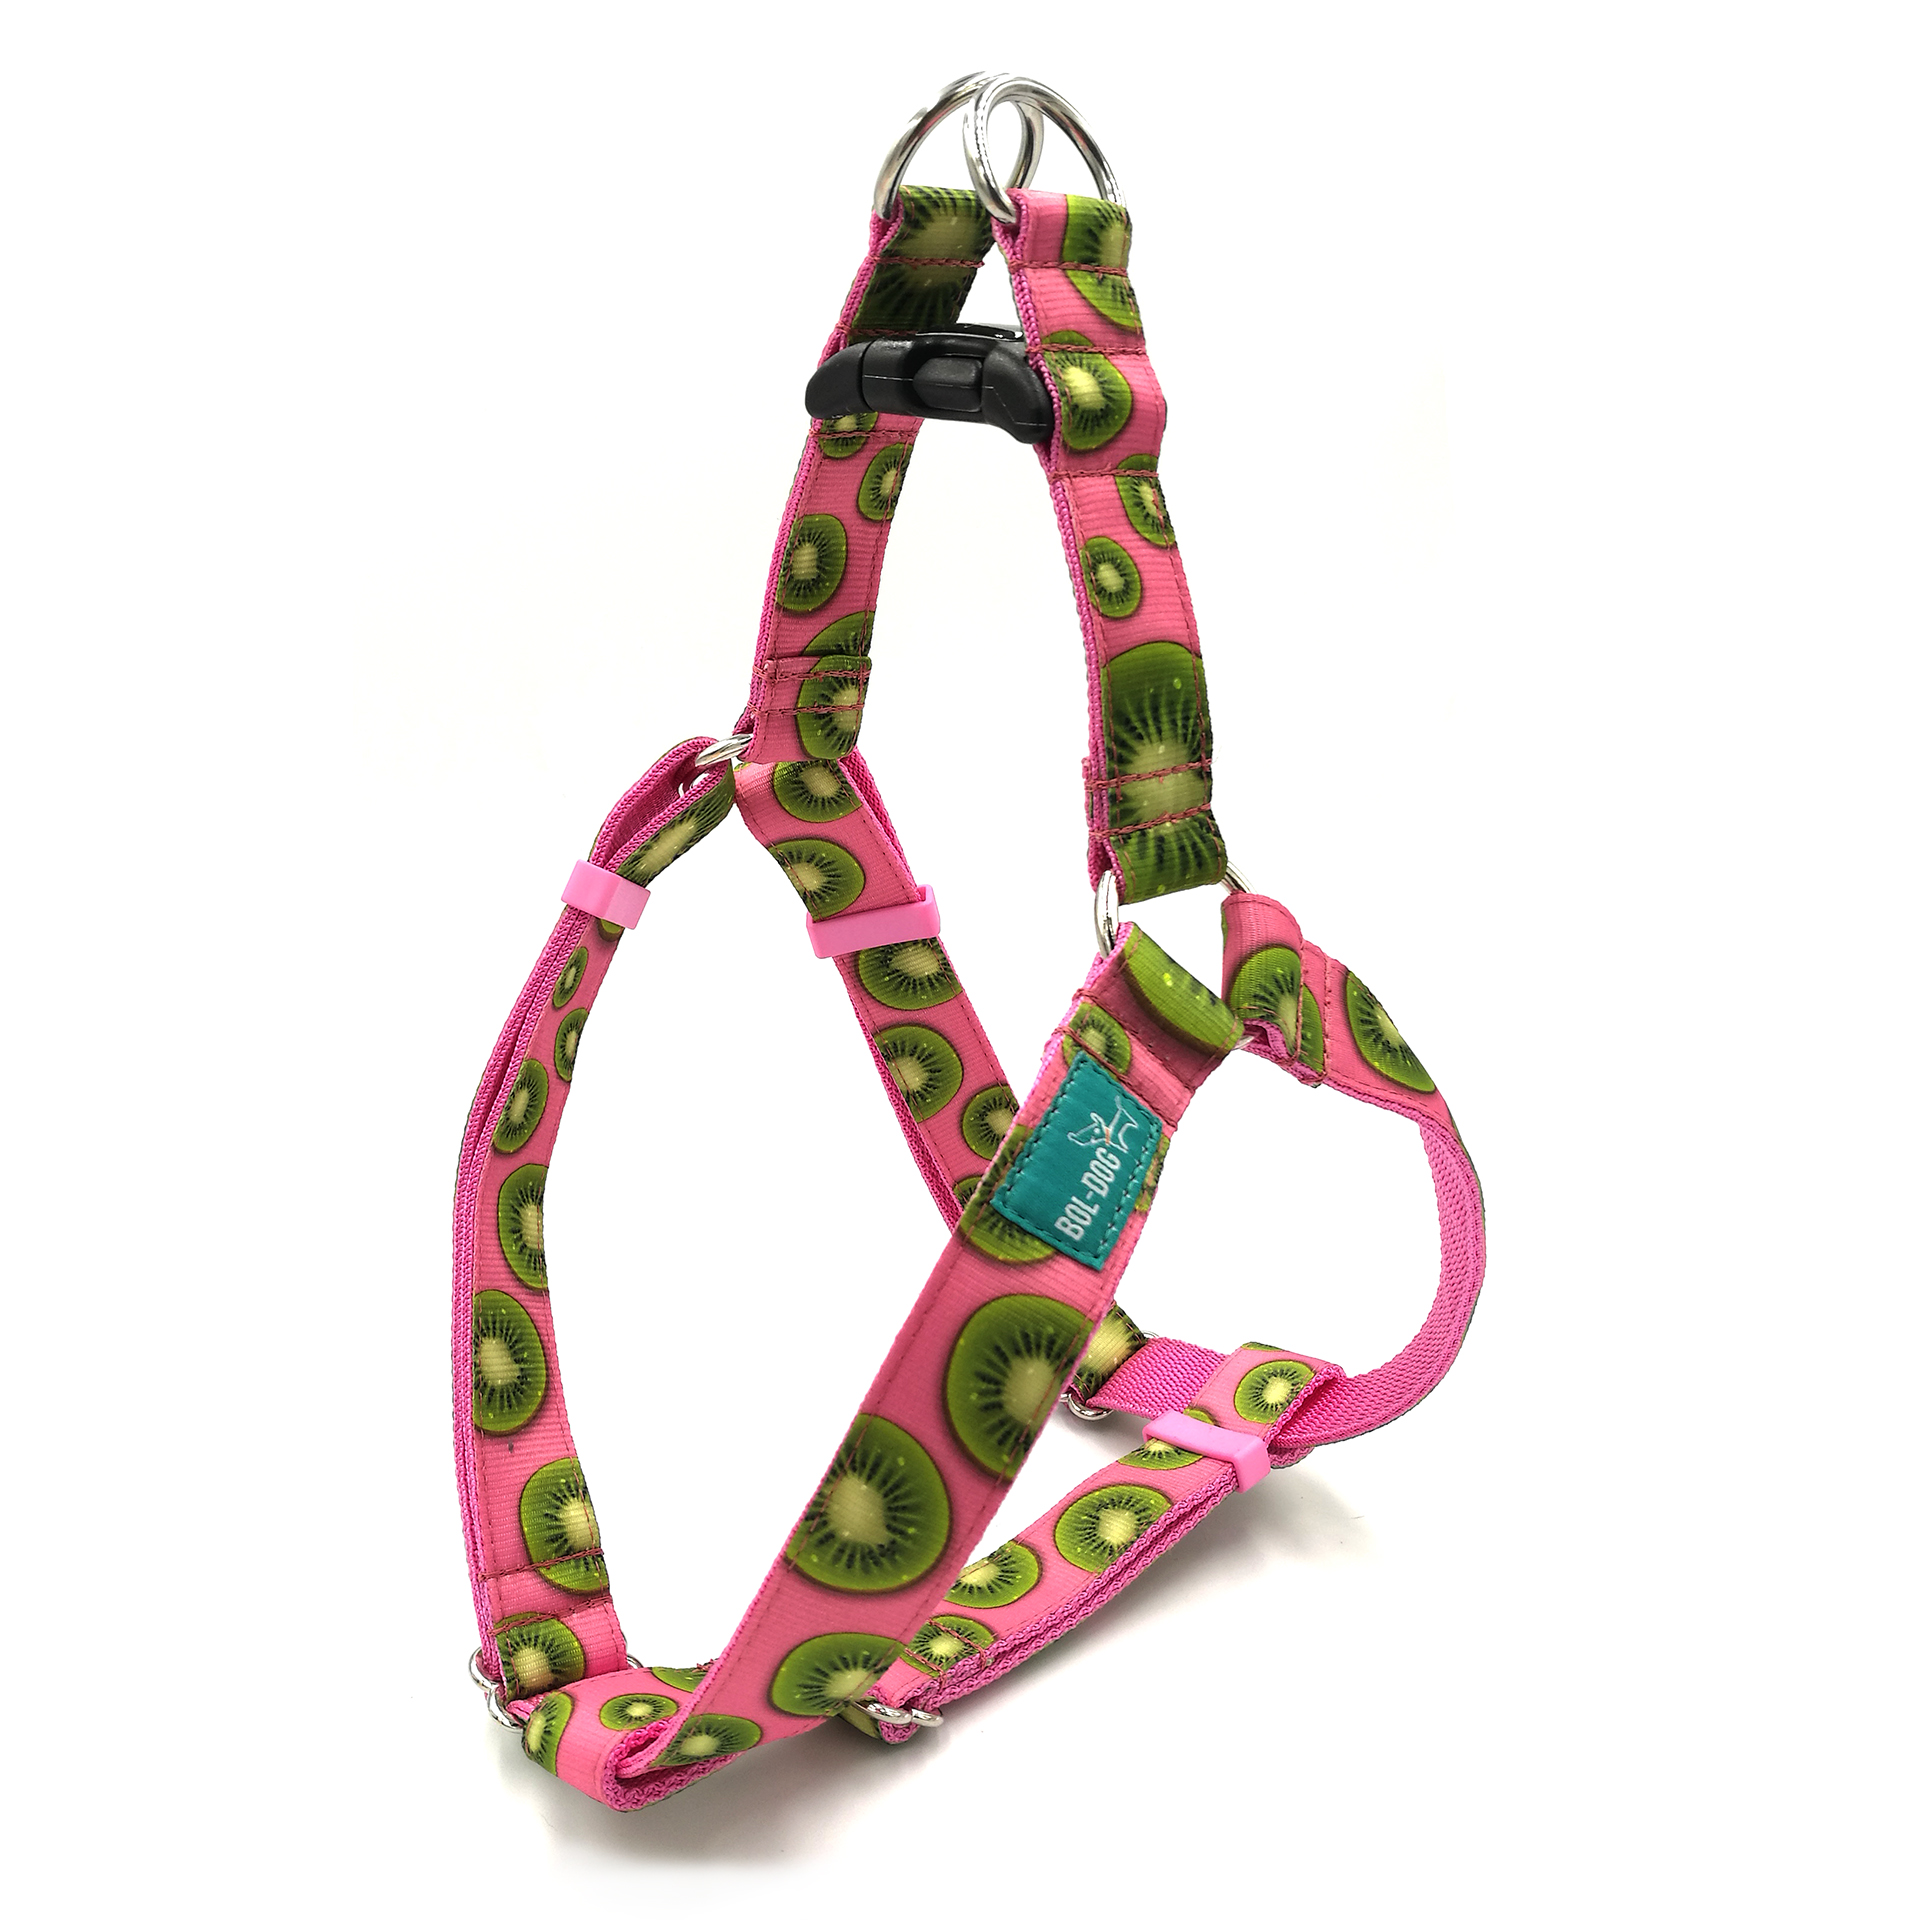 Kiwi dog harness